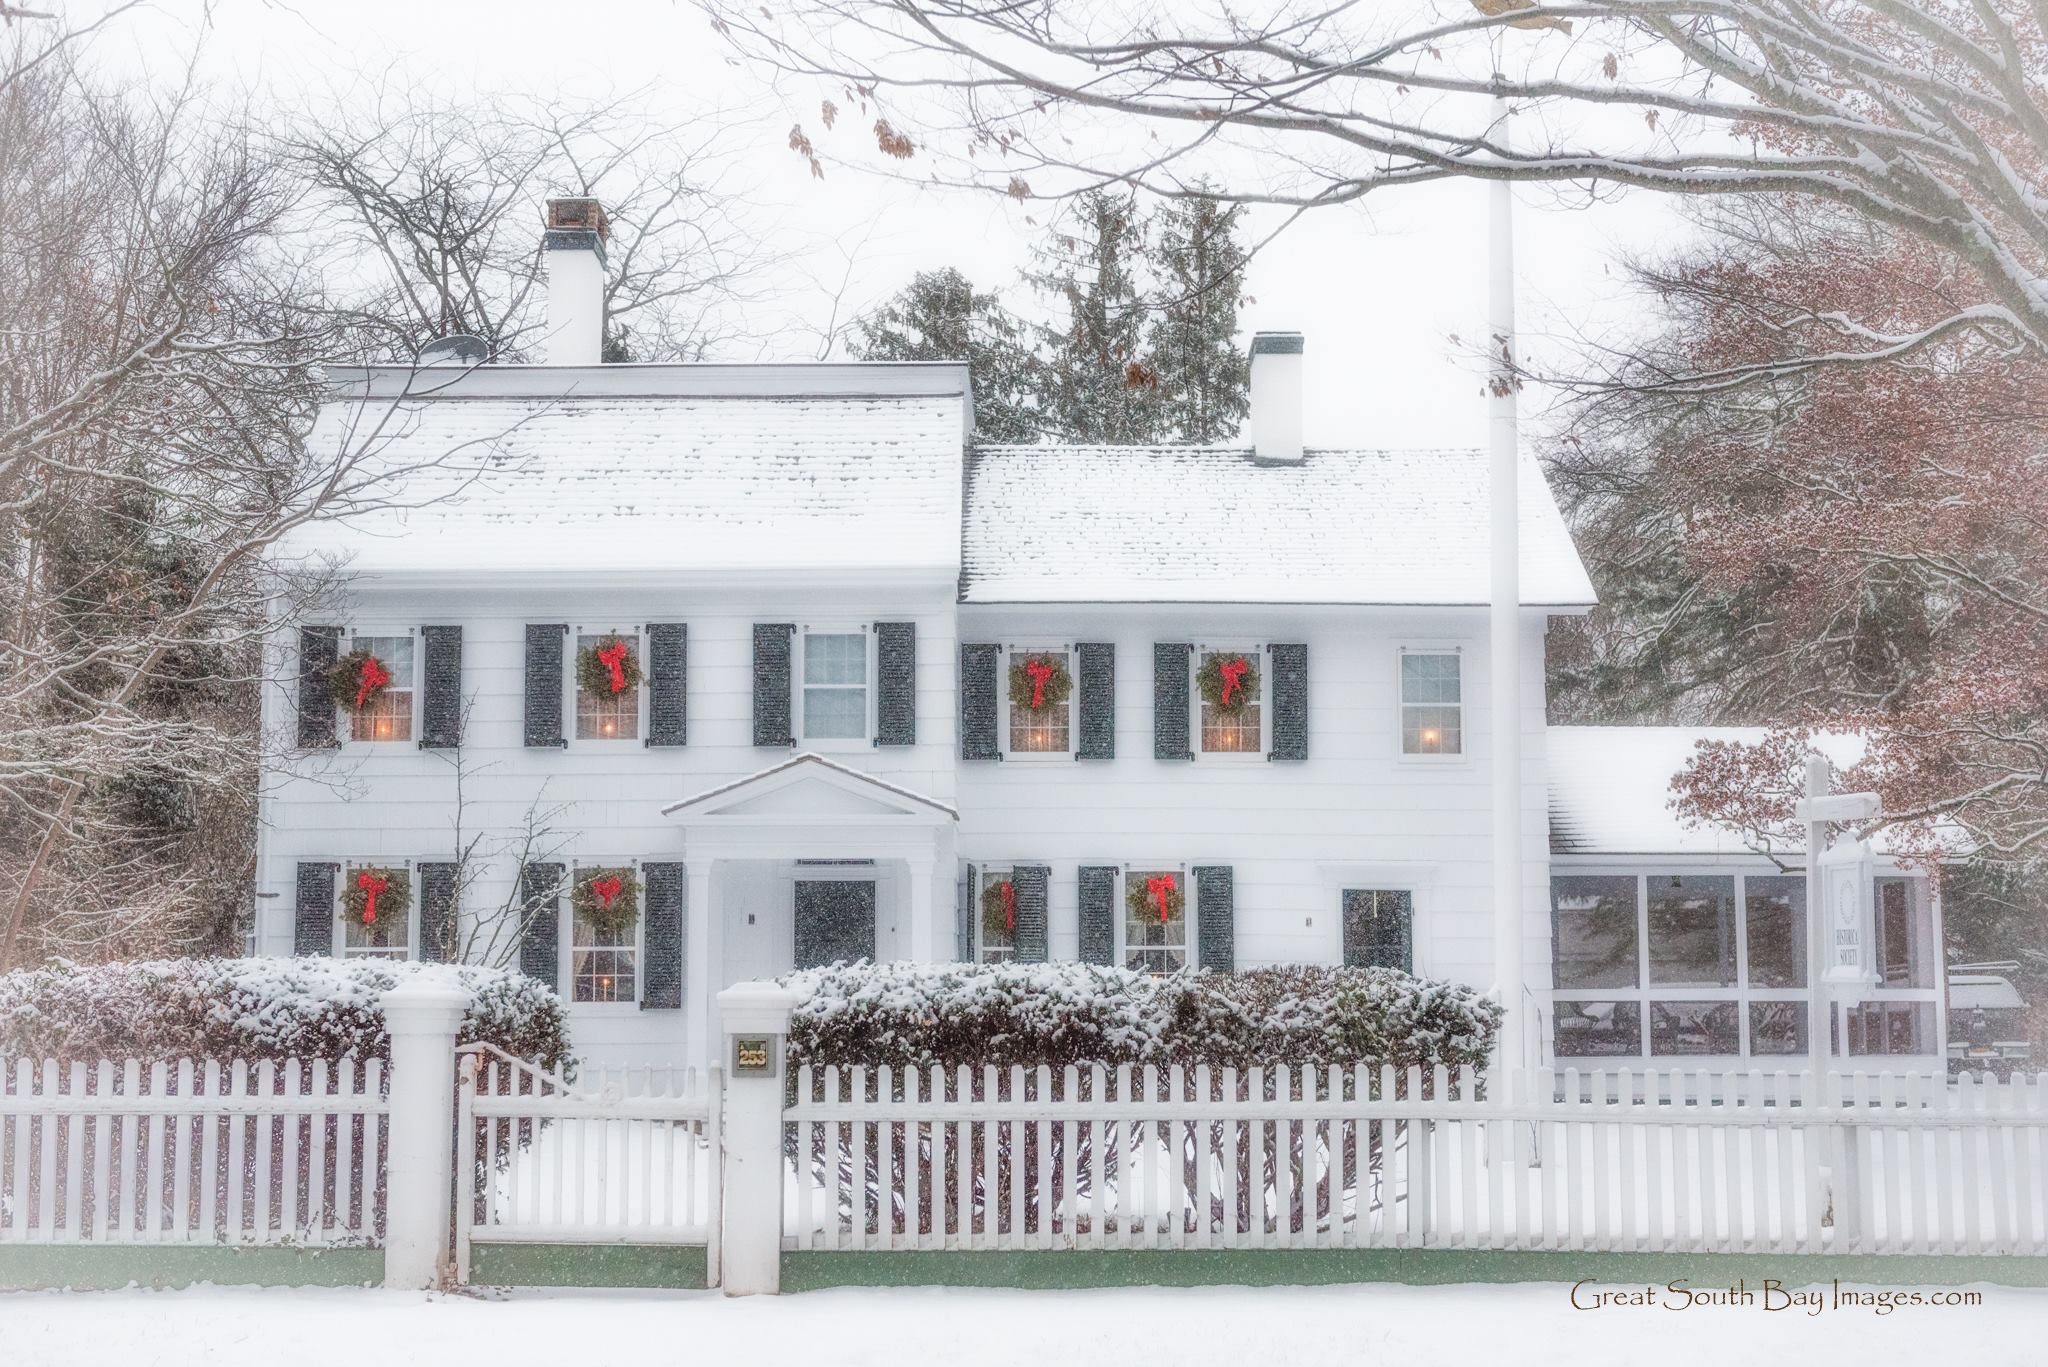 Bellport Historic District Preservation Commission Work Session on Saturday, March 21, 2020 at 9:00 am